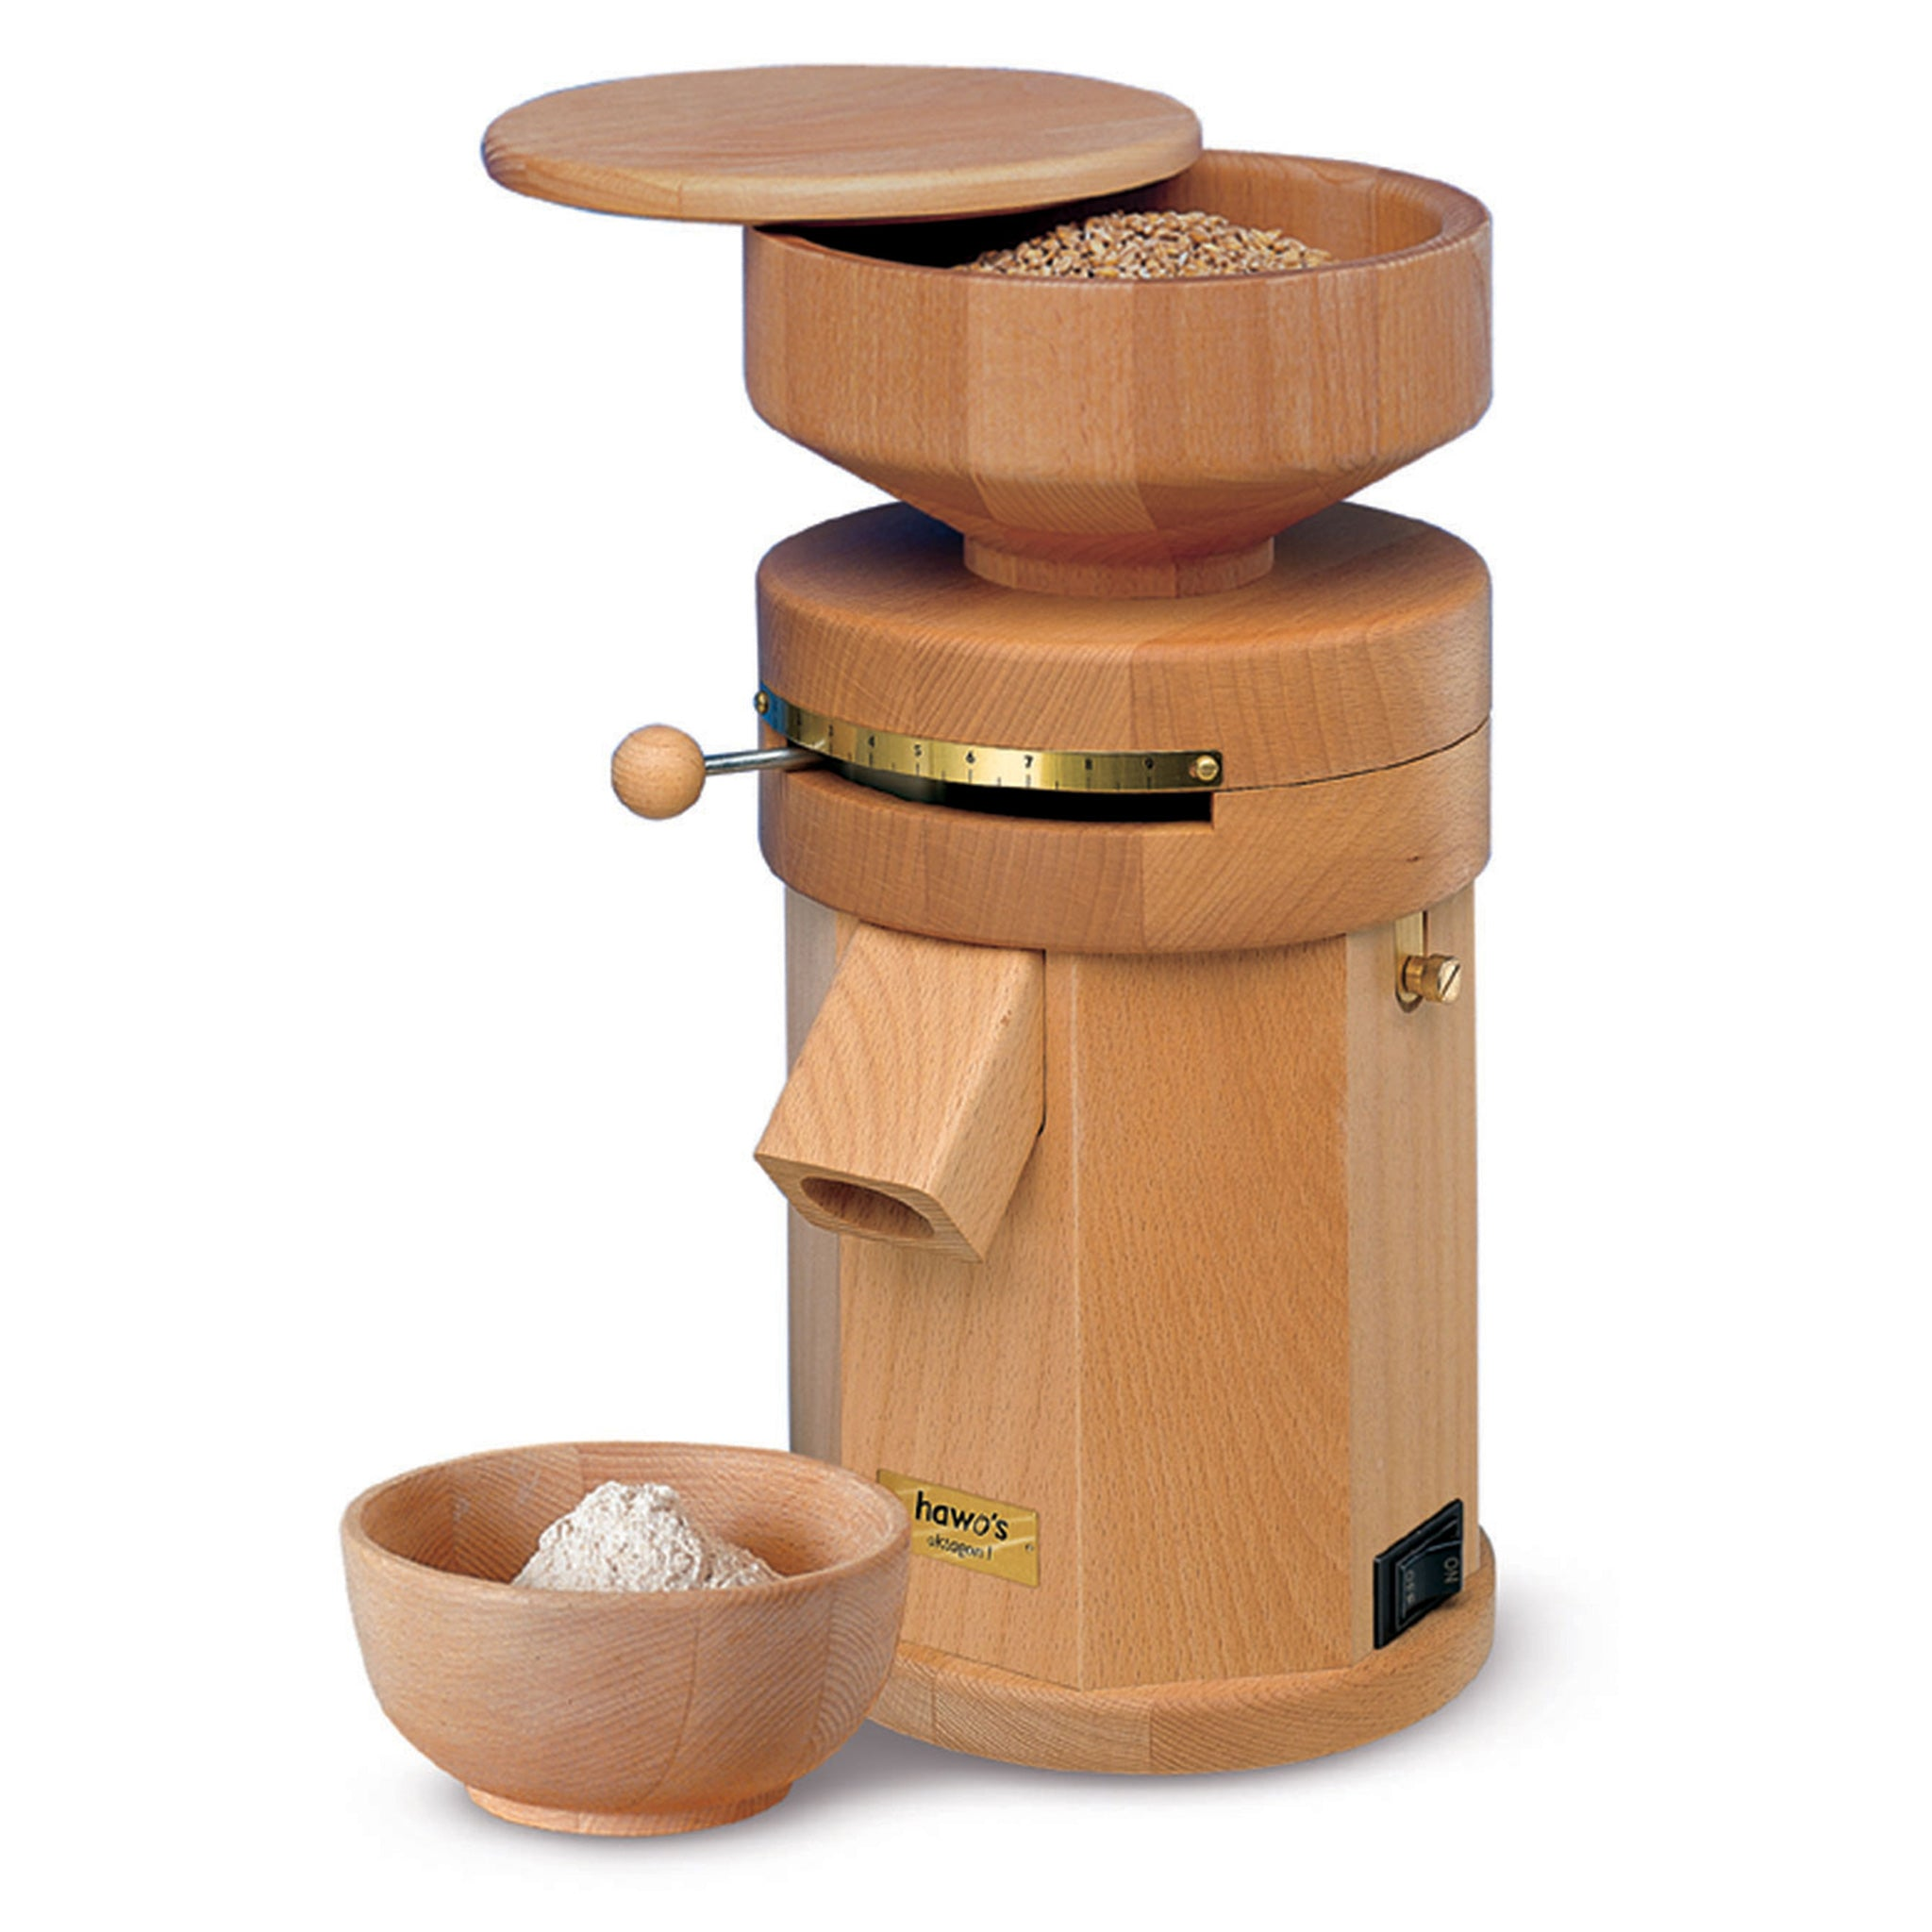 Octagon-1 Hand-Crafted Grain Mill HM-OCTA-B - Tribest